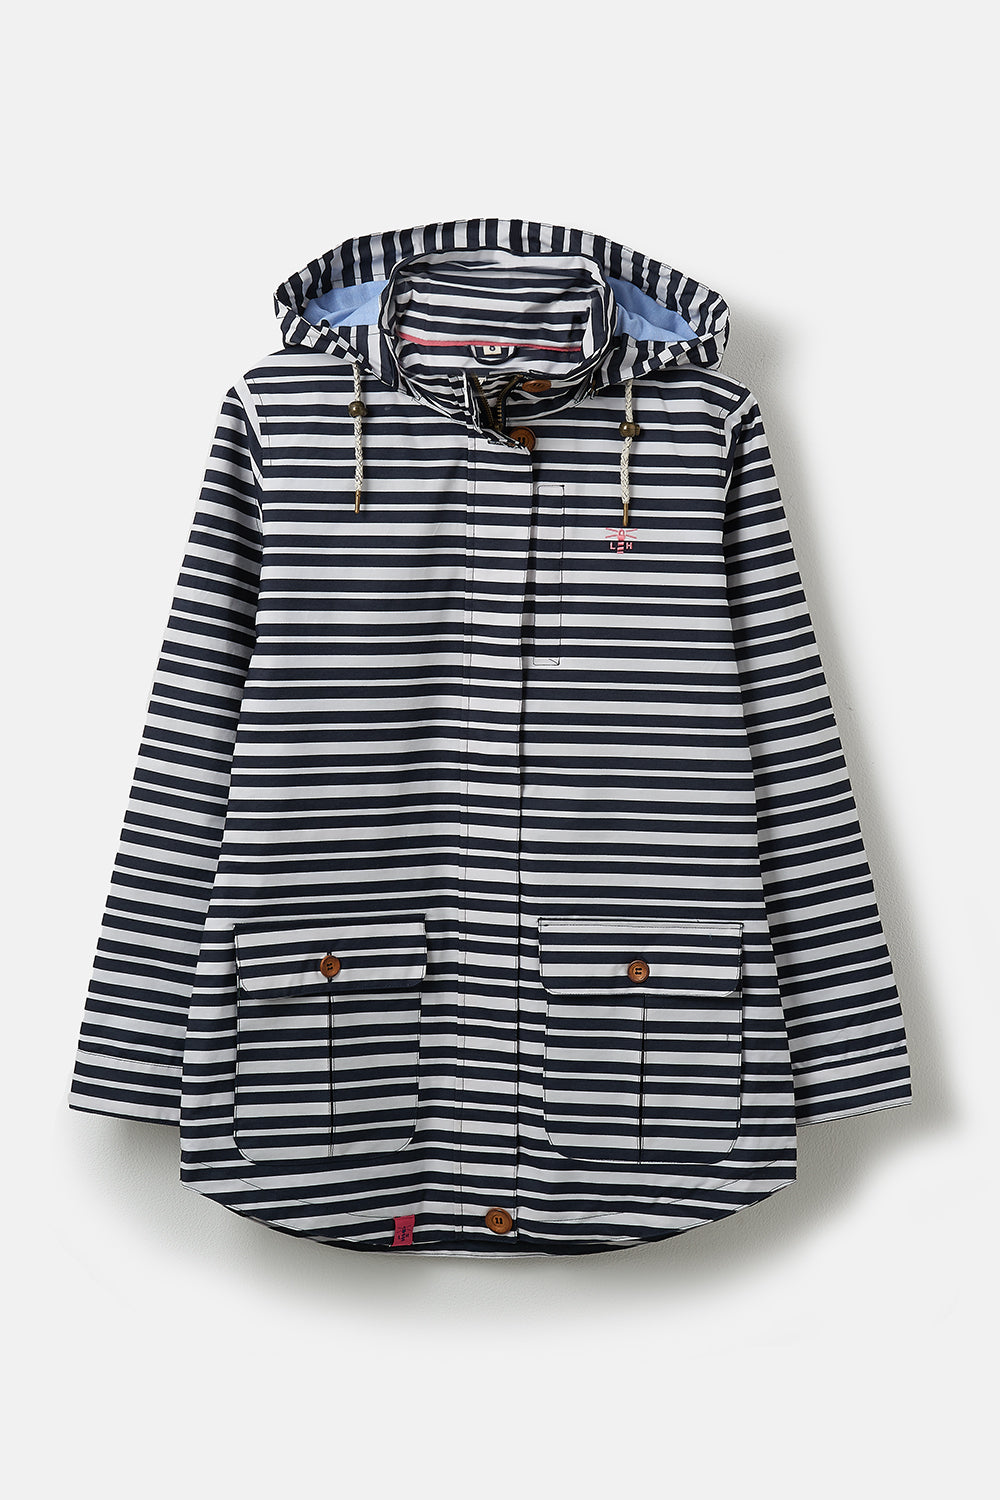 Tori Jacket - Night Sky Stripe